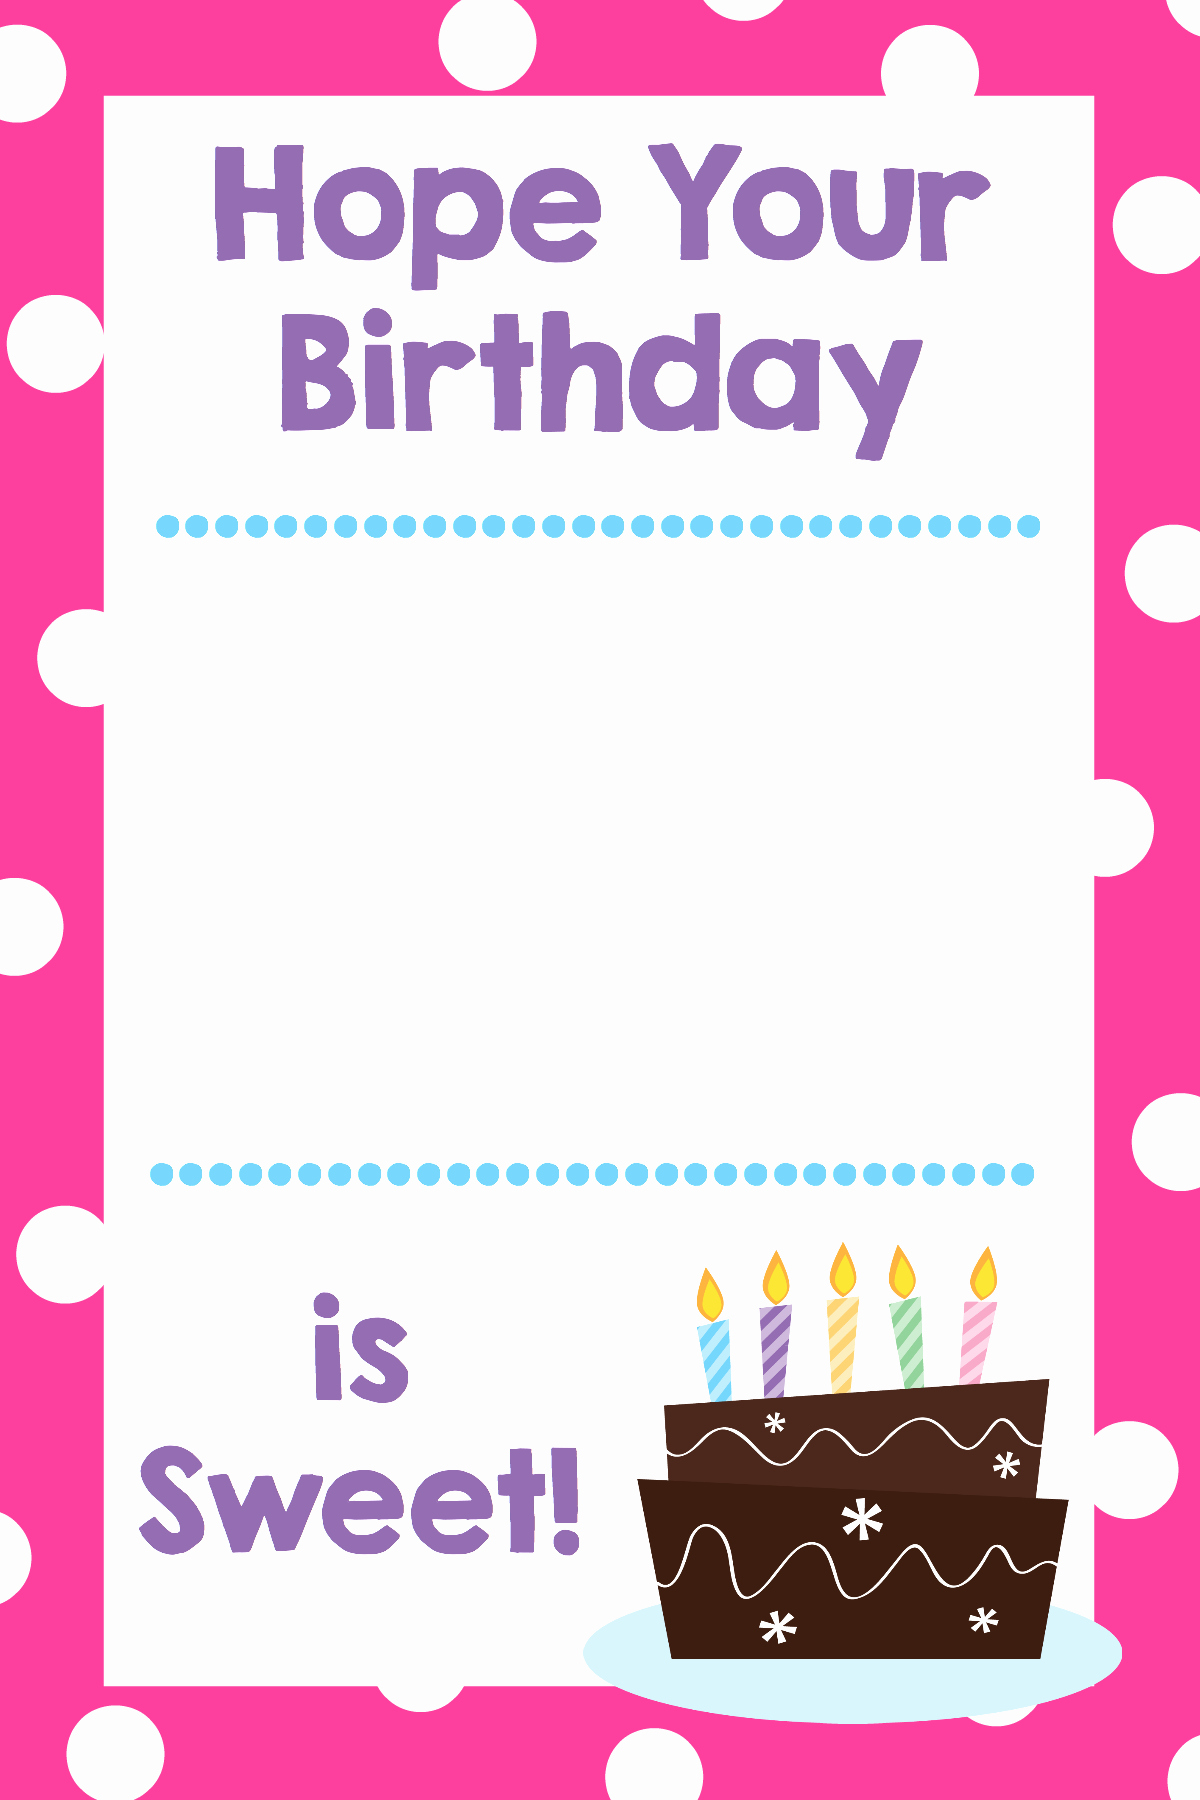 Free Printable Gift Cards Online Inspirational Printable Birthday Gift Card Holders Crazy Little Projects